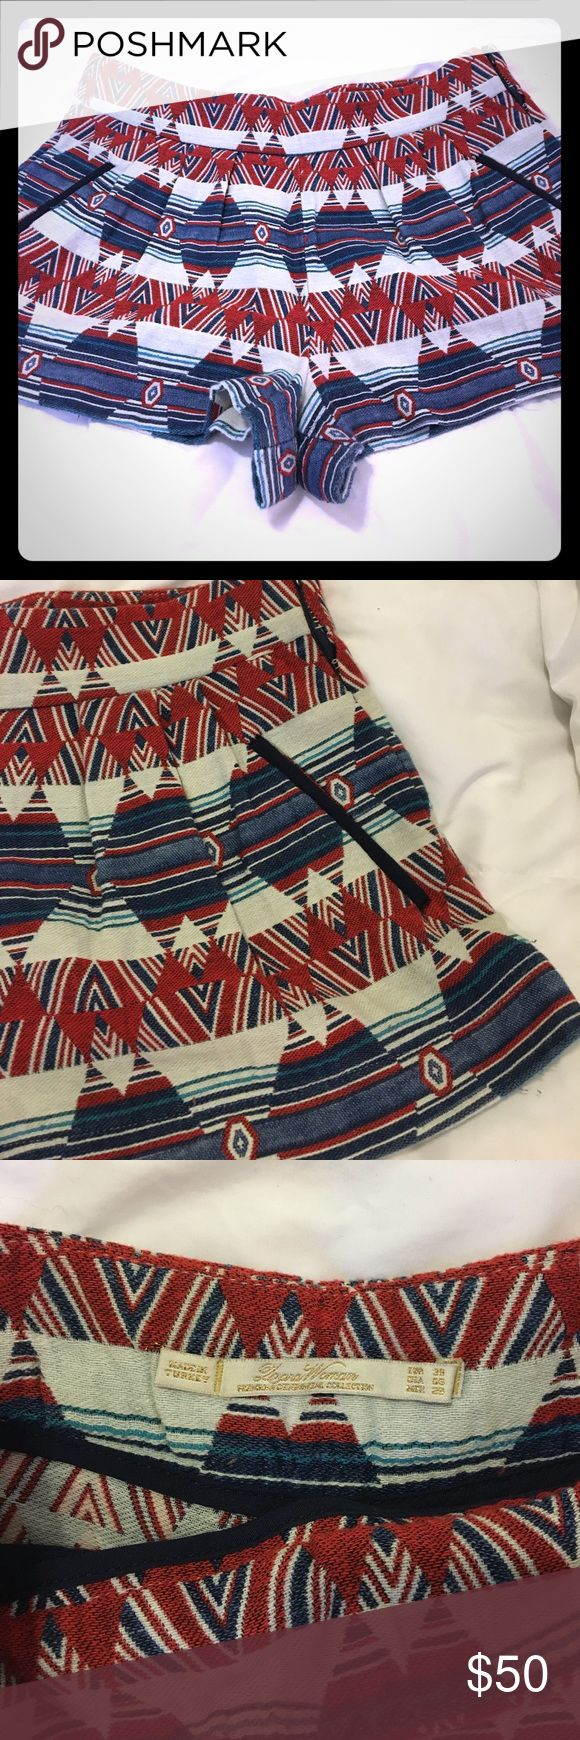 Zara Women Premium Collection Tribal Shorts Red, blue, and white tribal shorts with pockets and side zip closure Zara Shorts Skorts